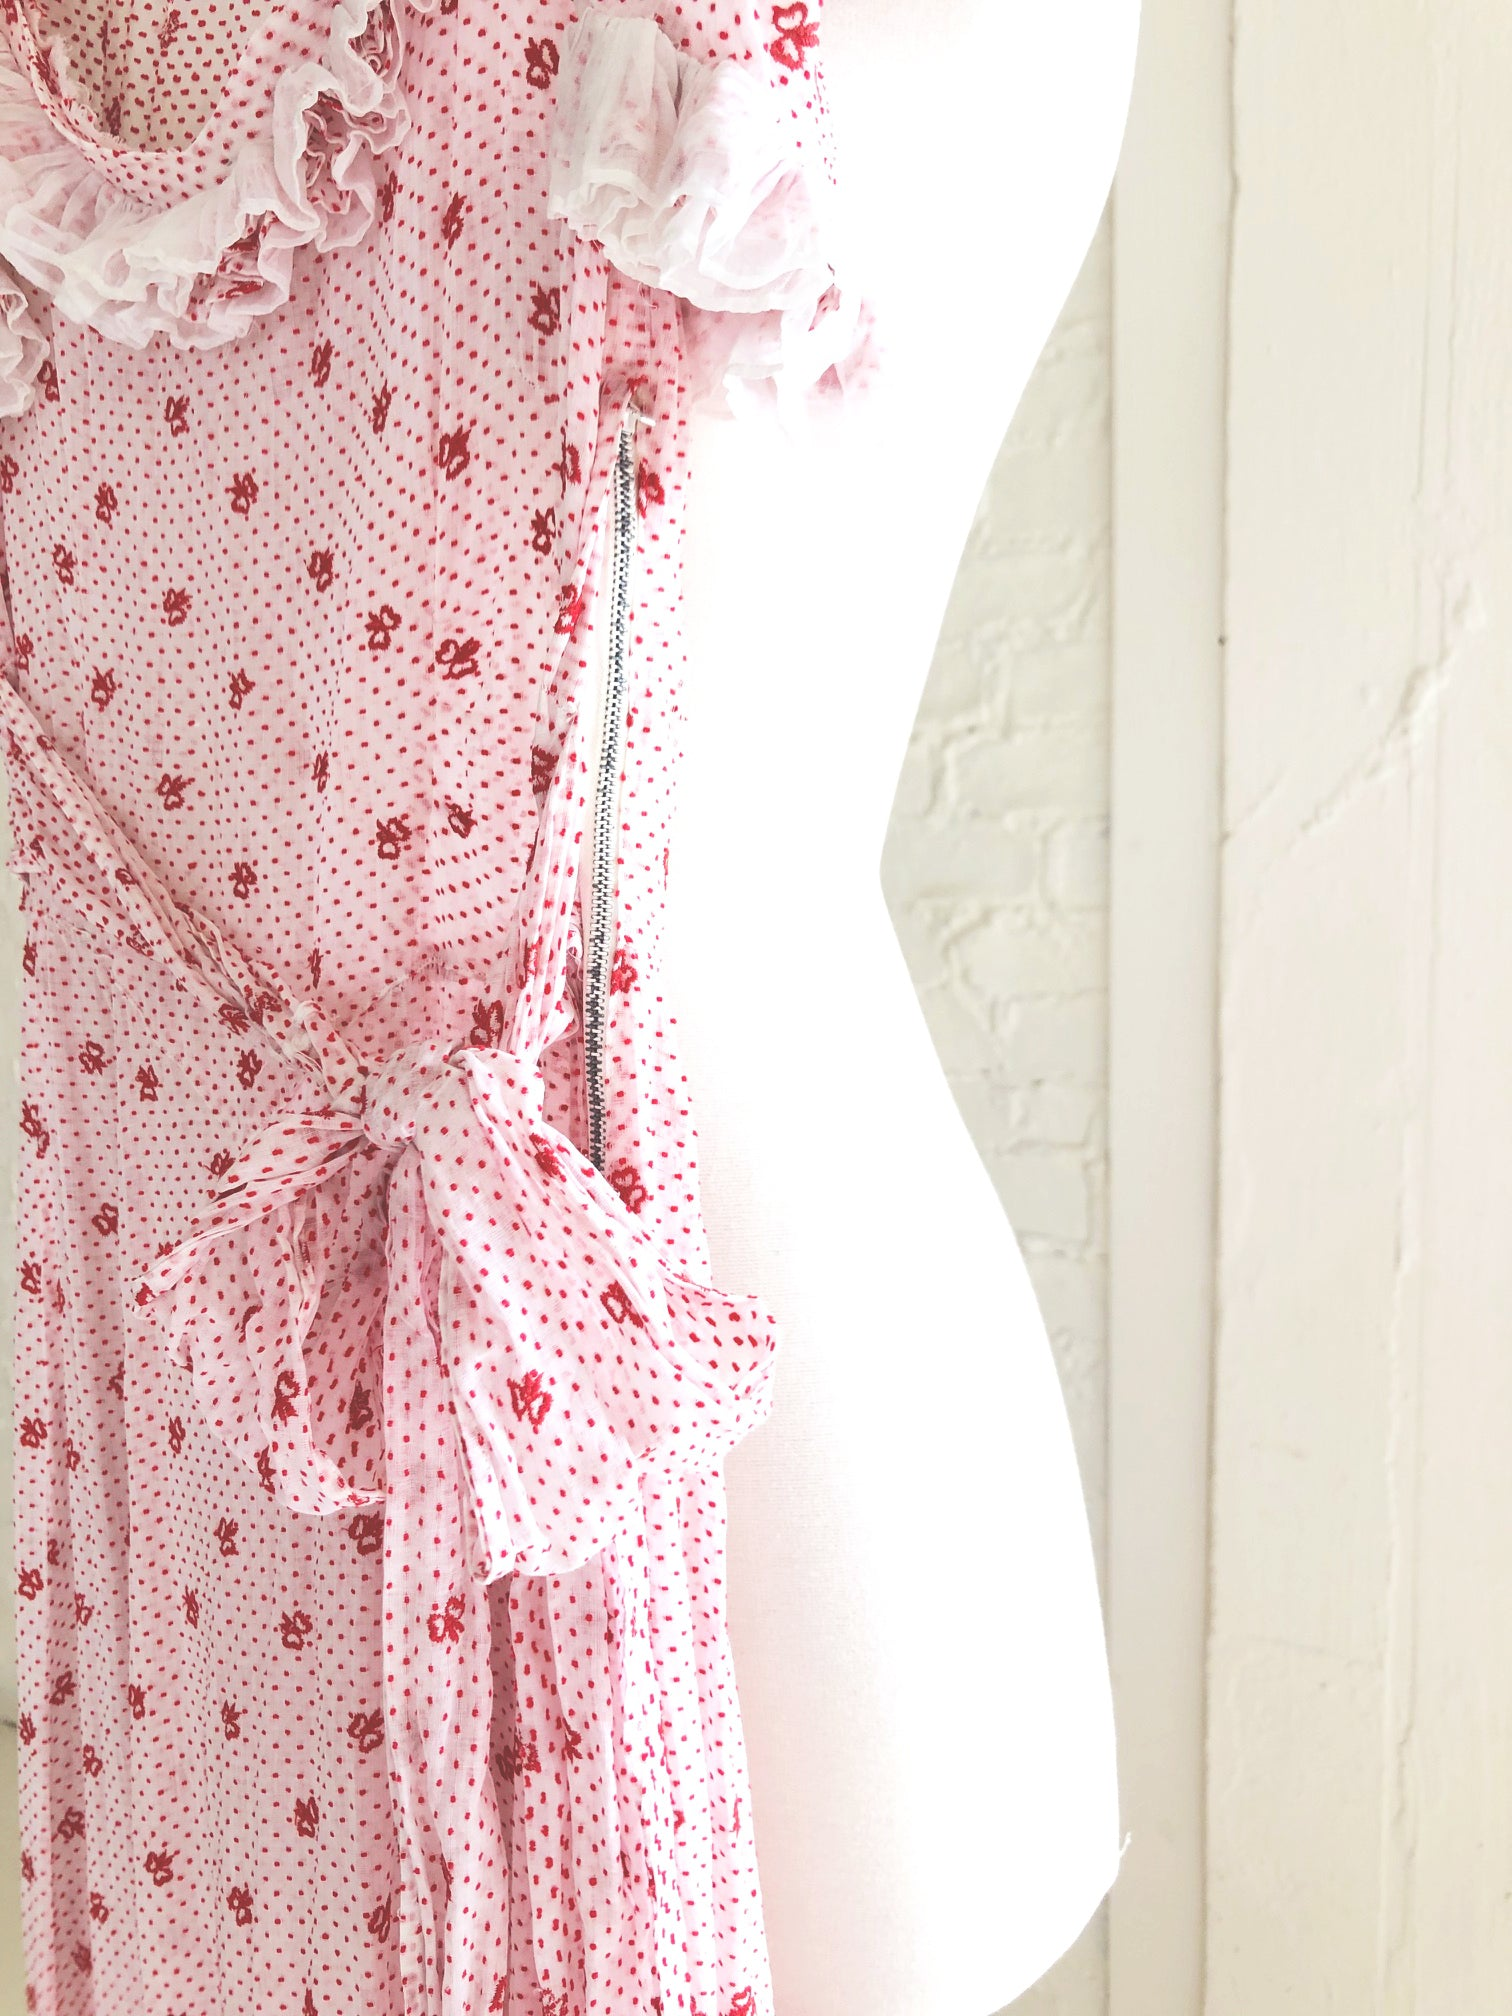 1930's Swiss Cotton Party Dress with Red Polka Dots and Embroidered Bows